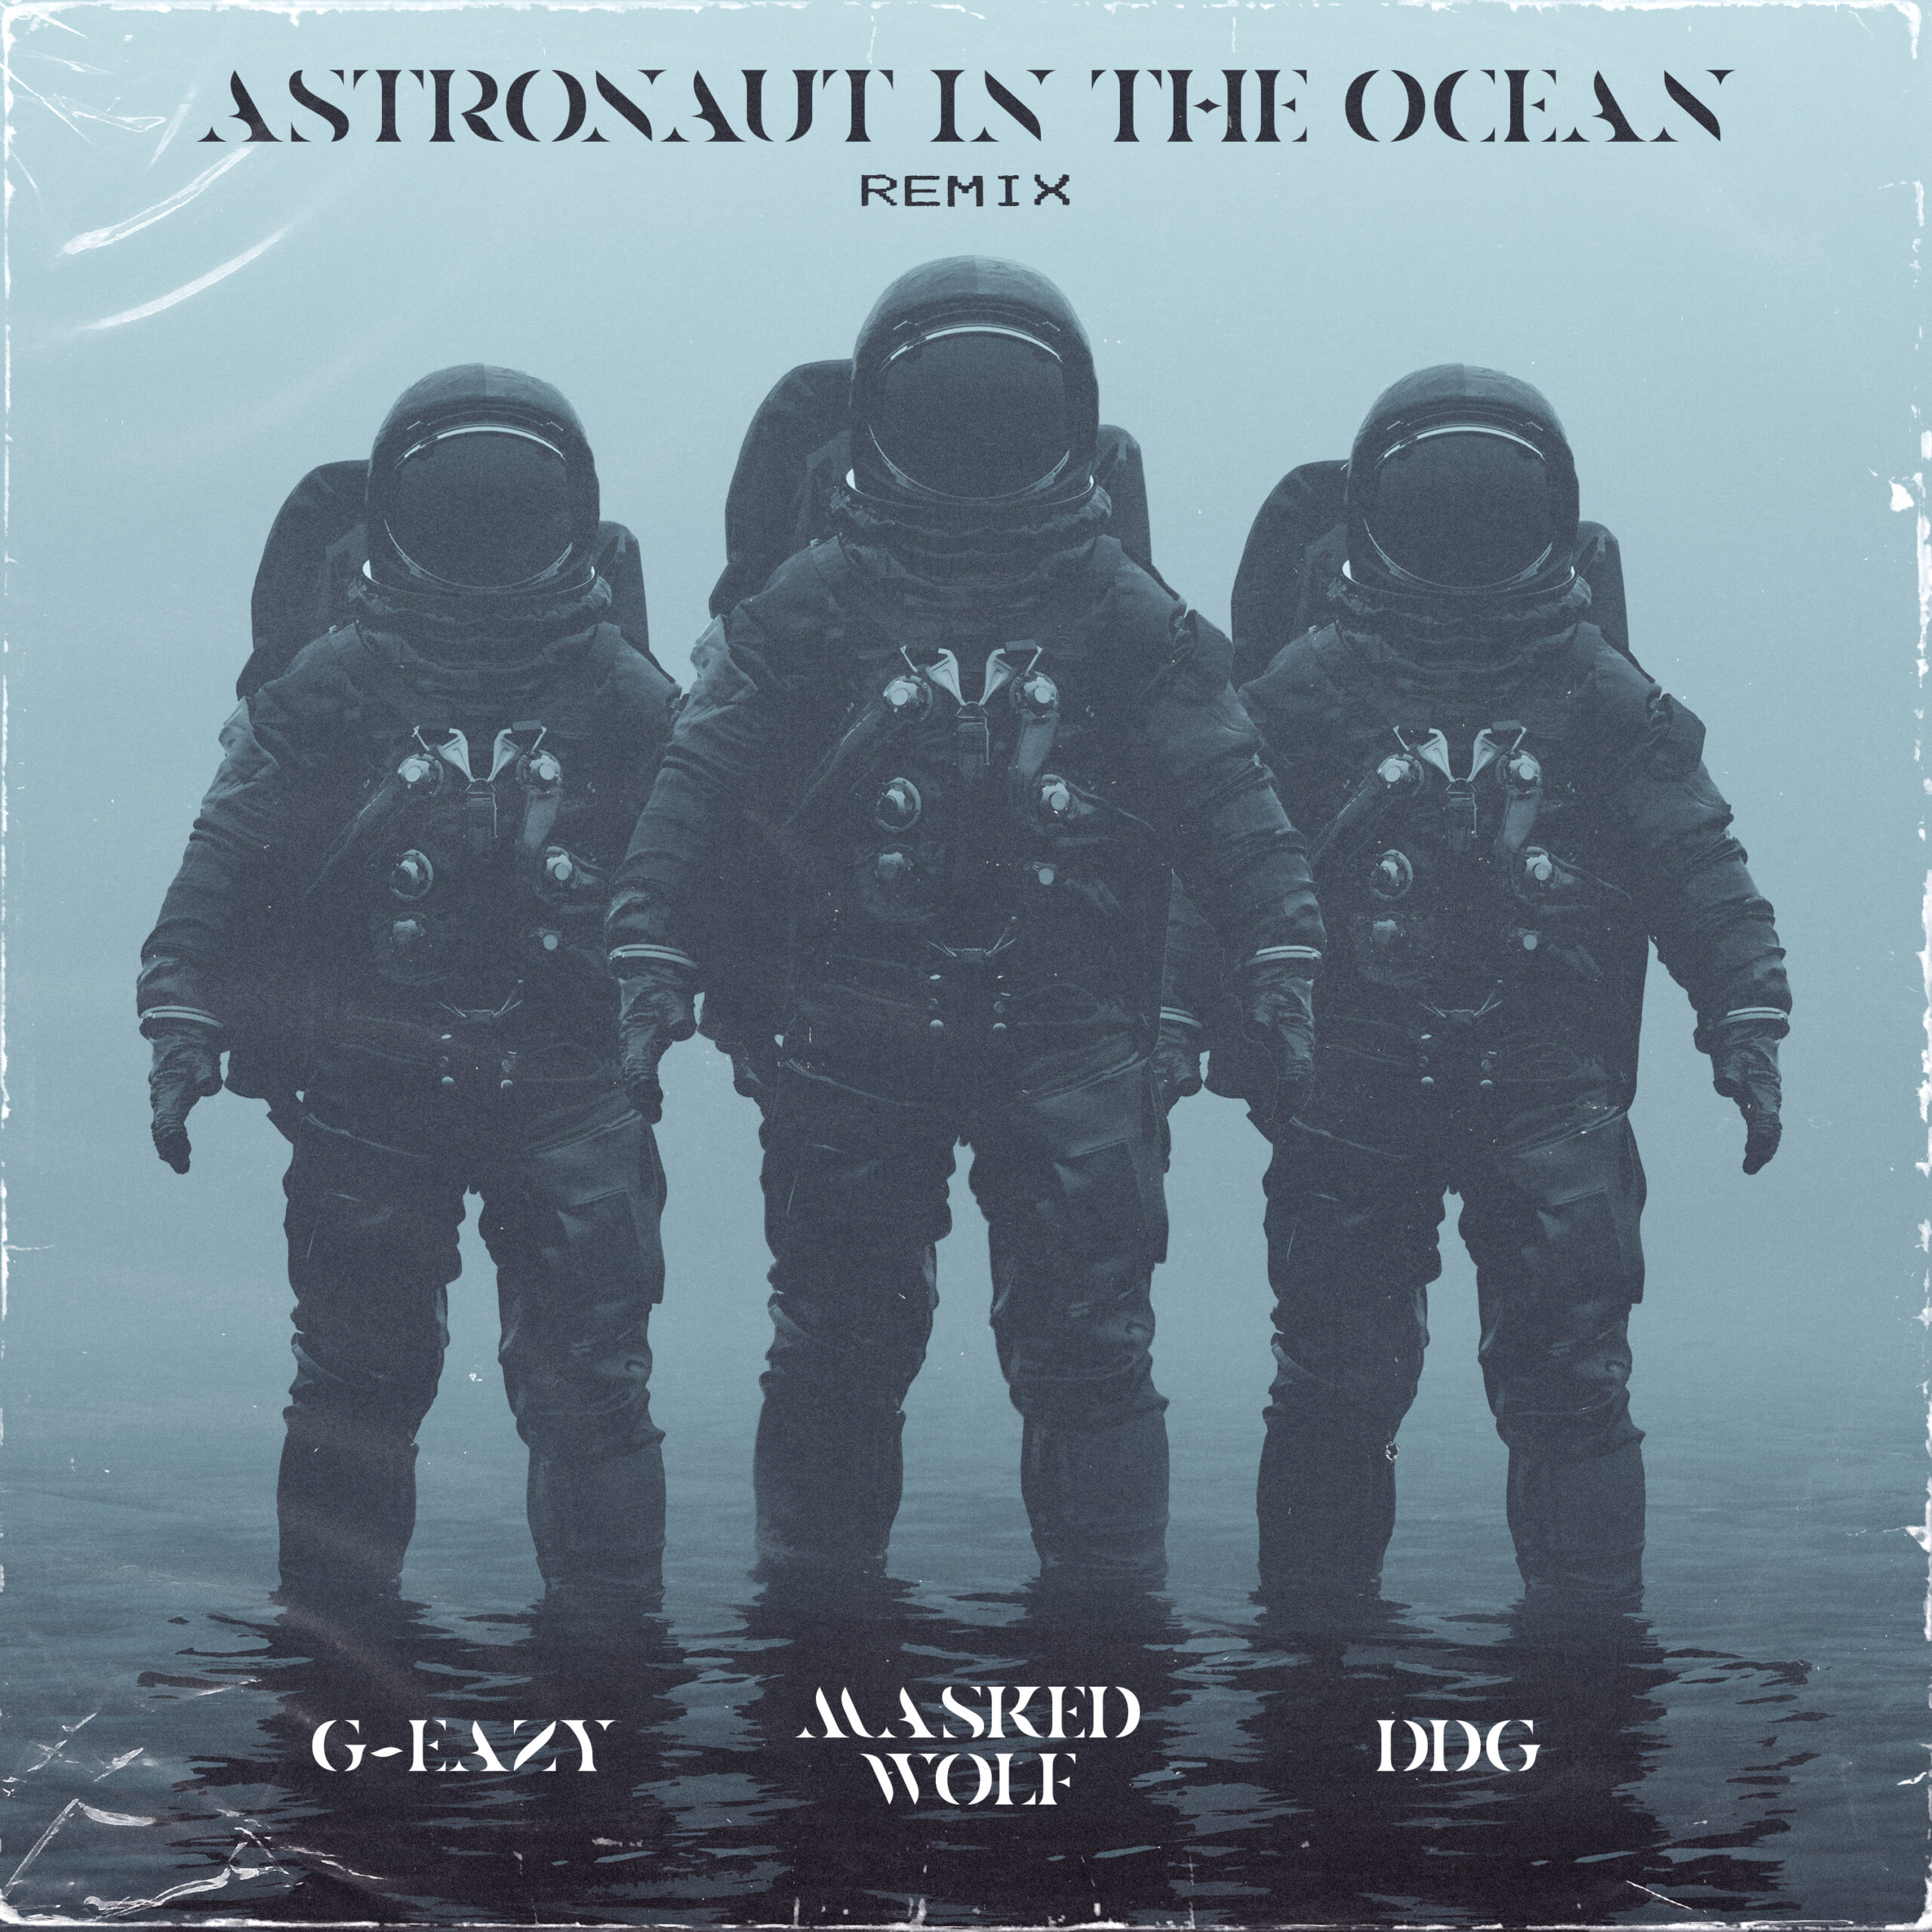 Astronaut in the Ocean Remix Single Artwork courtesy of Elektra Music Group for use by 360 Magazine